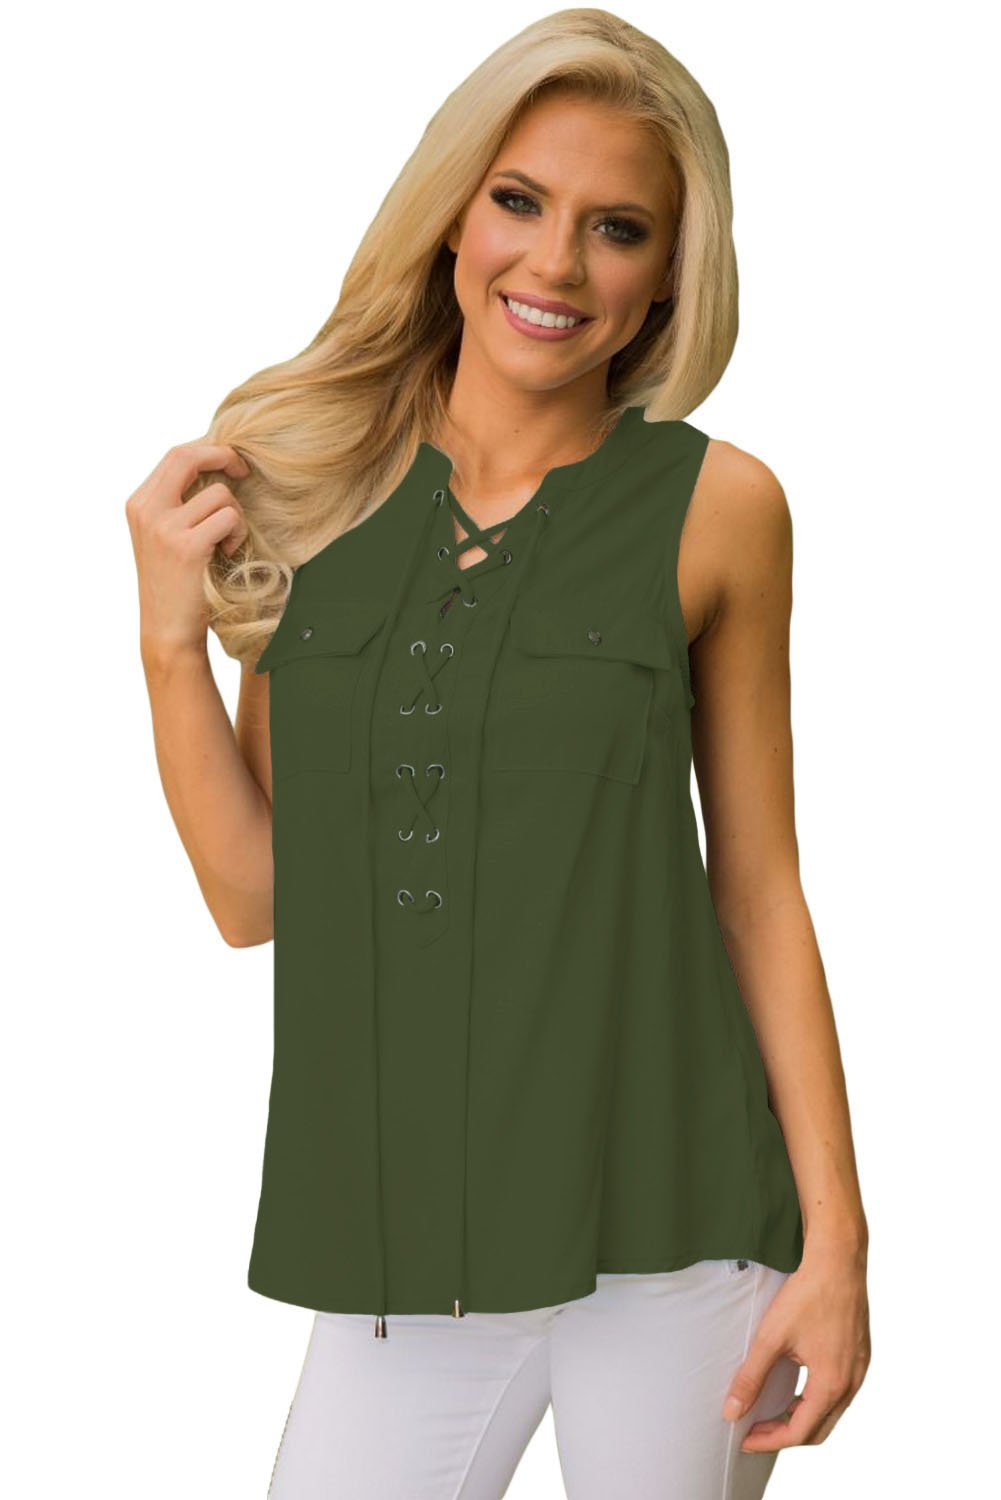 Mint Sleeveless Tank Top with Lace up